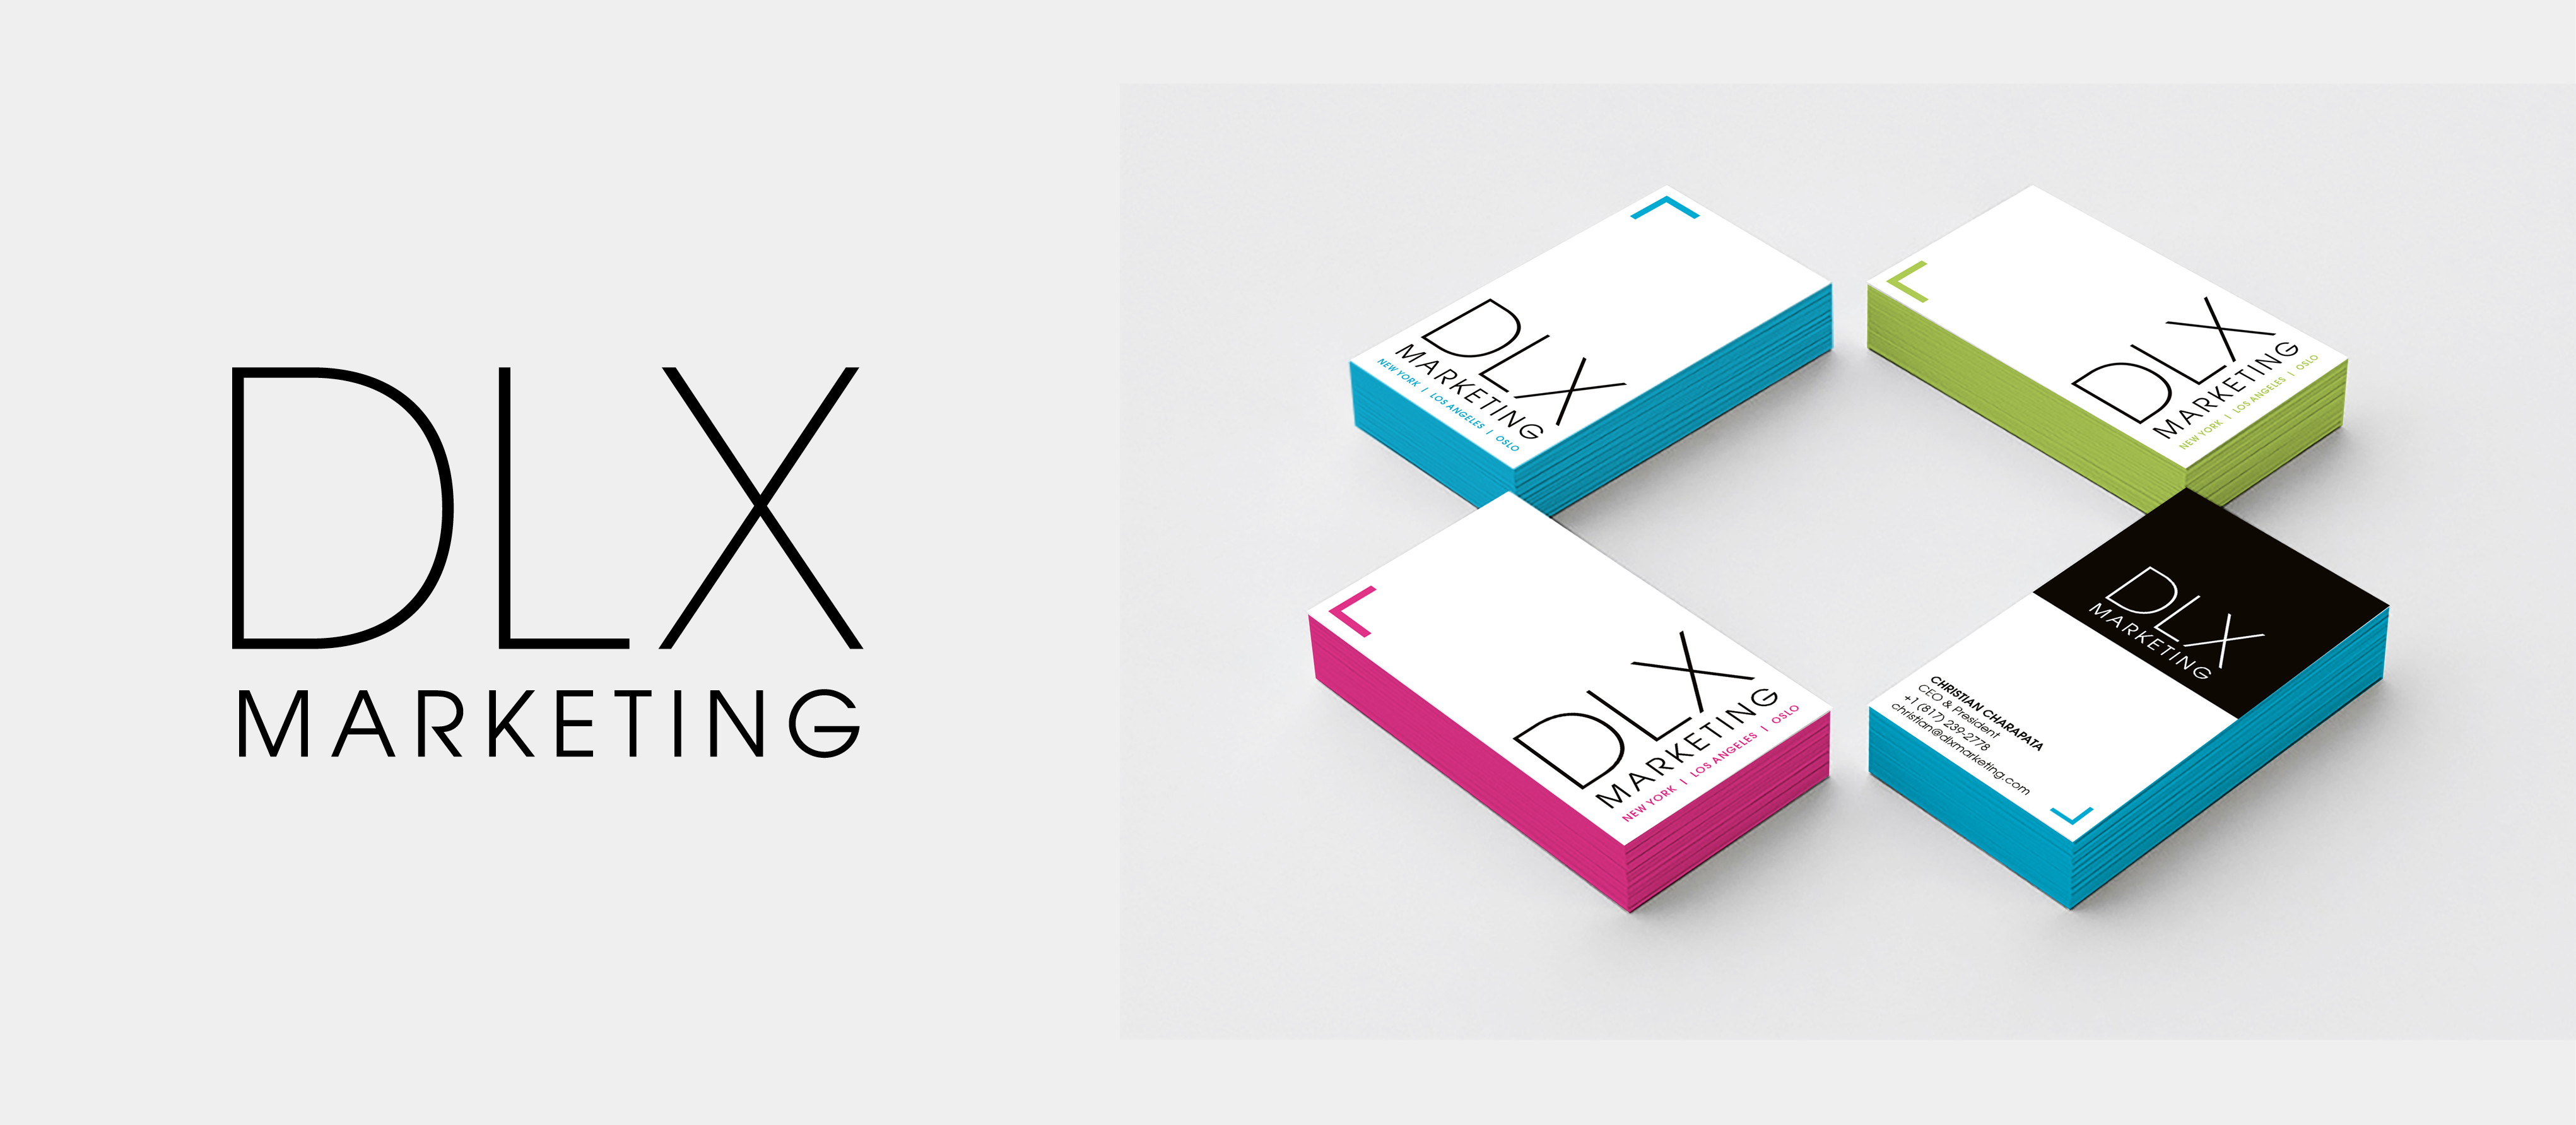 DLX Marketing